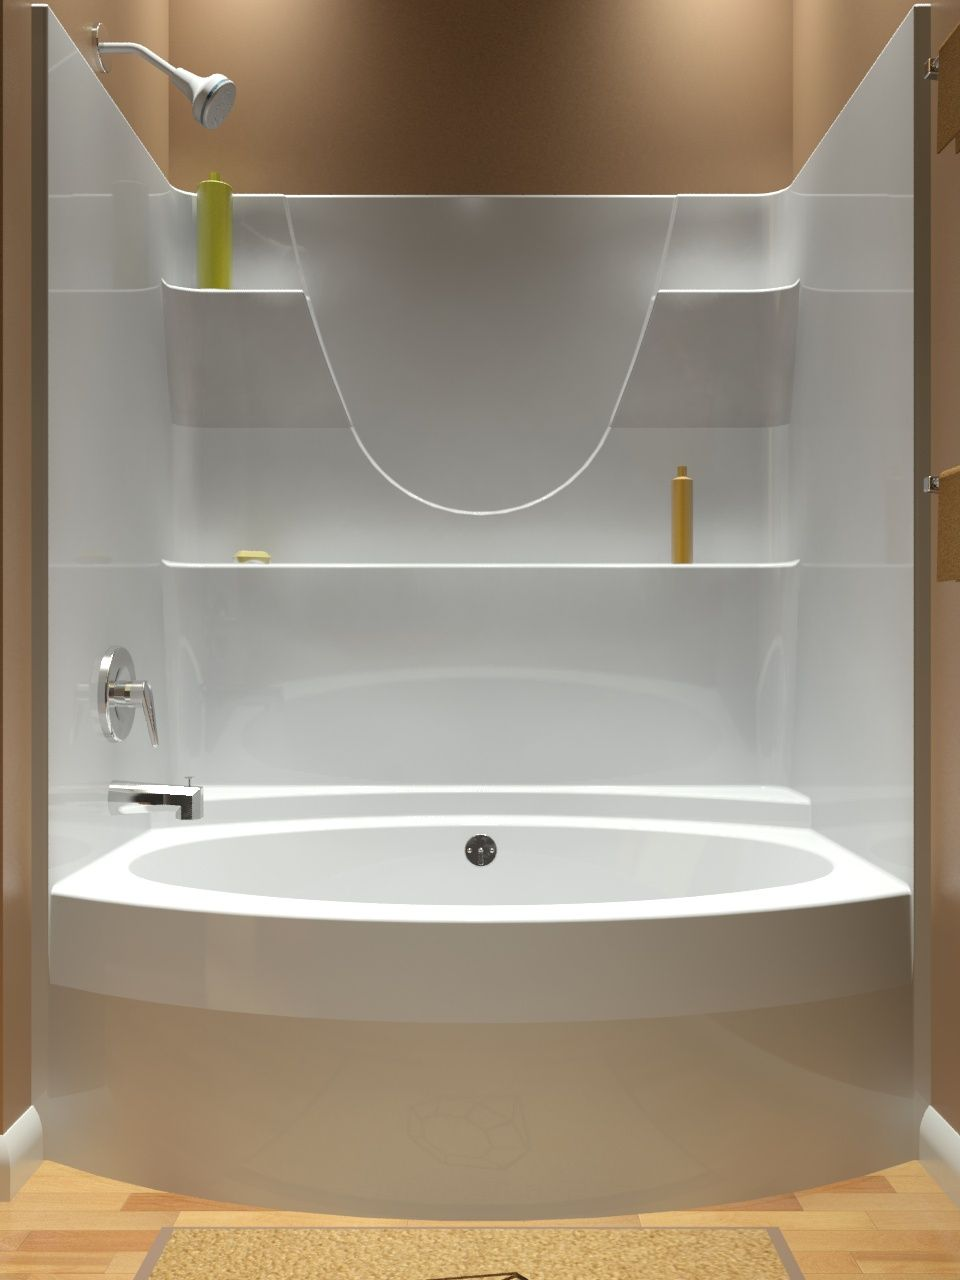 Oval White Fiberglass Corner Bathtub With Shower Curtain Of Impressive Corner Tub Shower Combo Ideas And B Bathtub Shower Combo Tub Shower Combo Fancy Bathroom